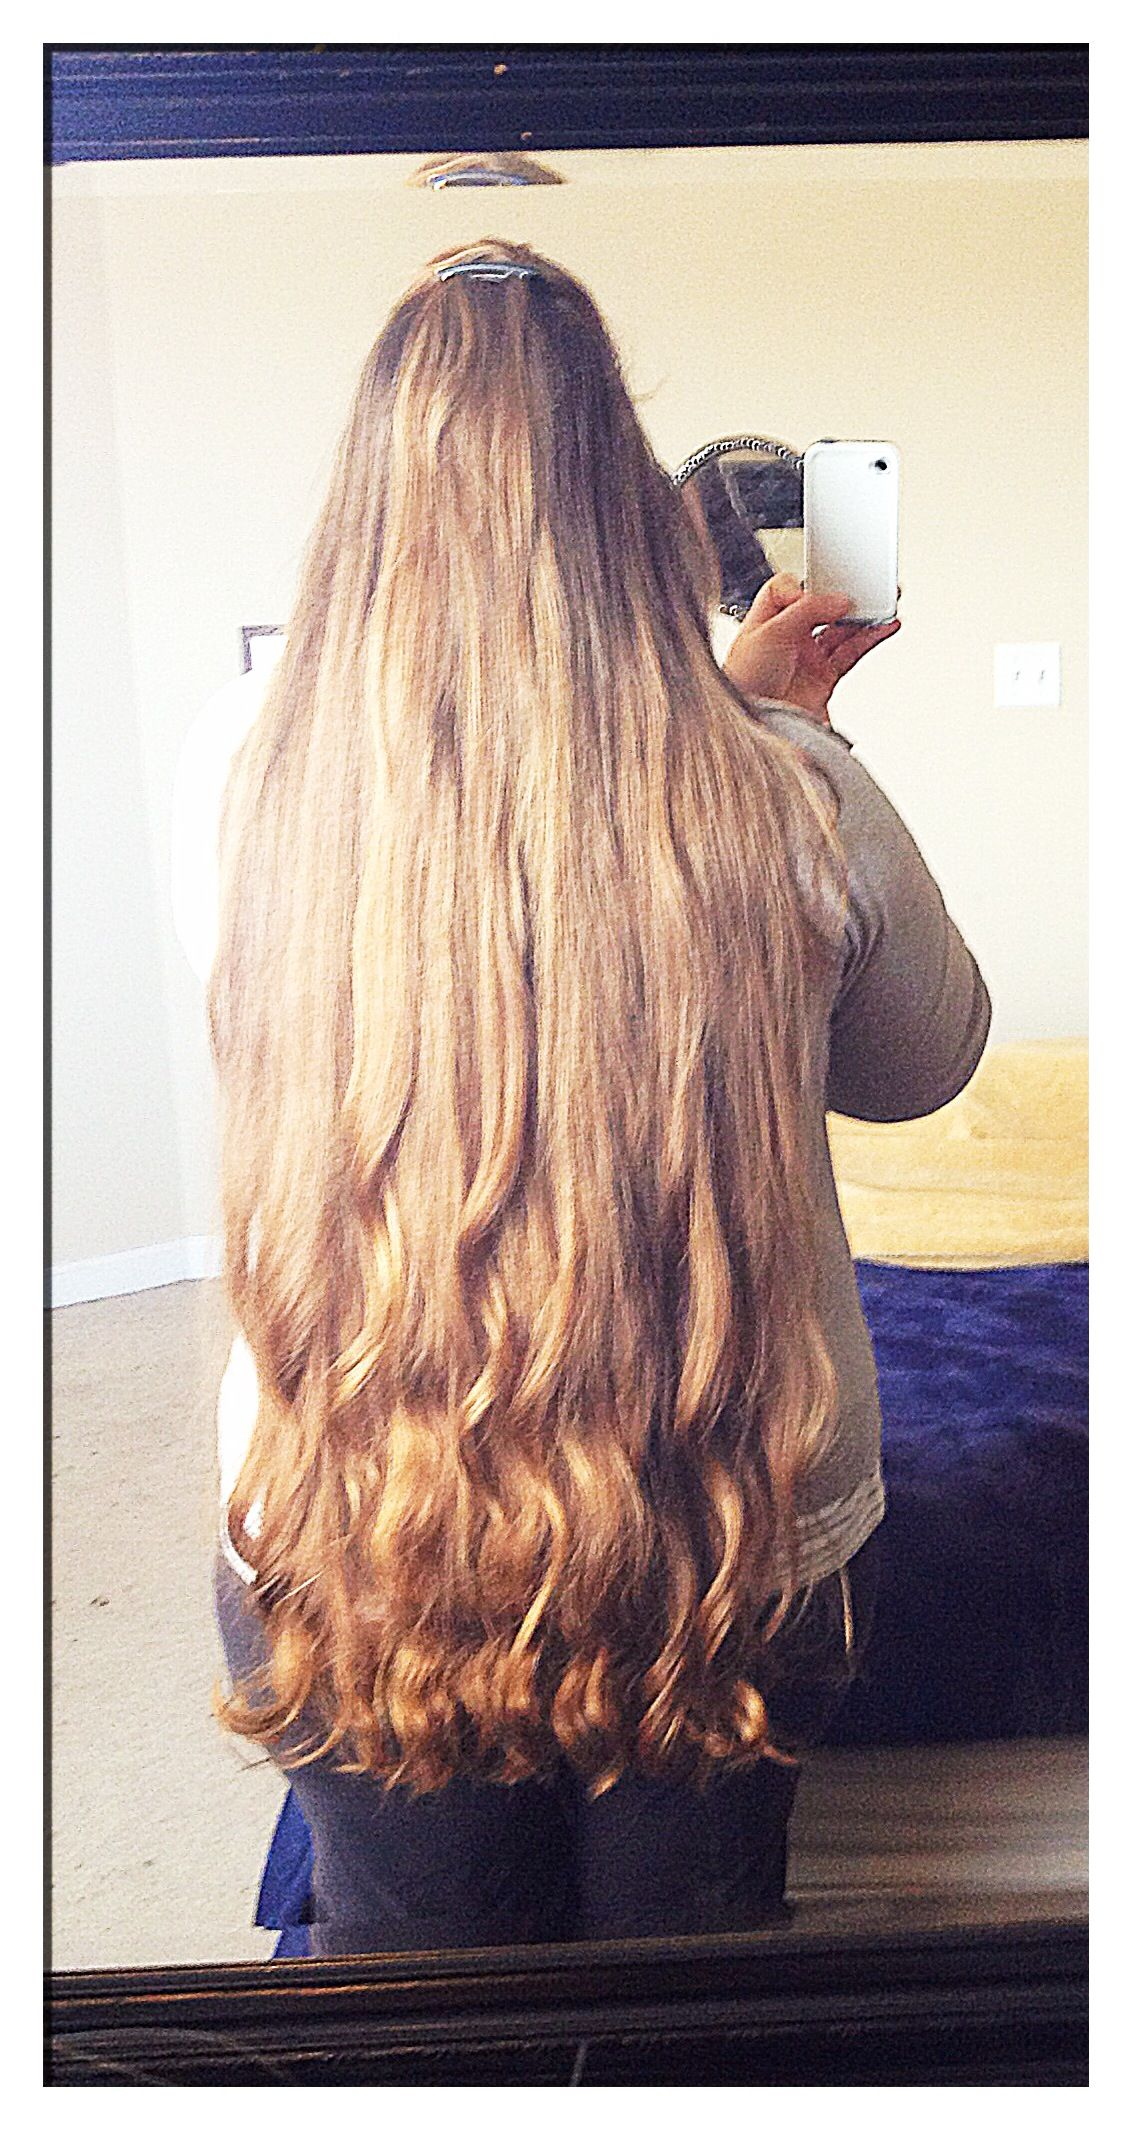 longest hair women 30 girls with longest hairs in the world